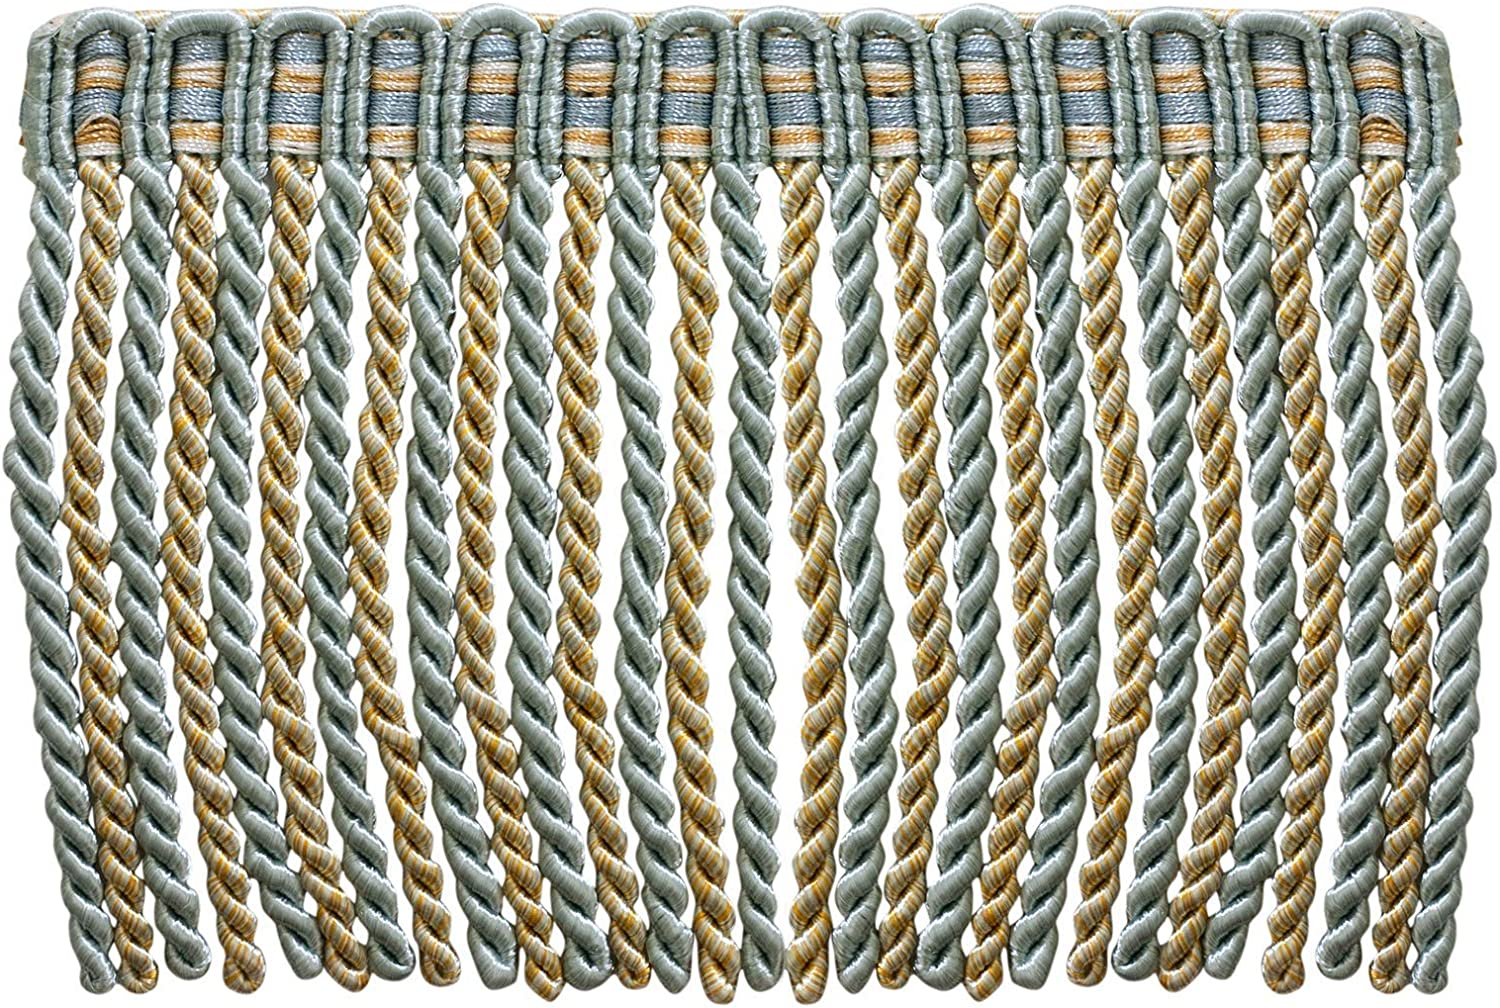 D/ÉCOPRO Brush Fringe Trim|1 3//4 45mm Silver Blue, Gold, Off-White - Island Breeze |Sold by The Yard |Style#: 0175HB|Color: 5939